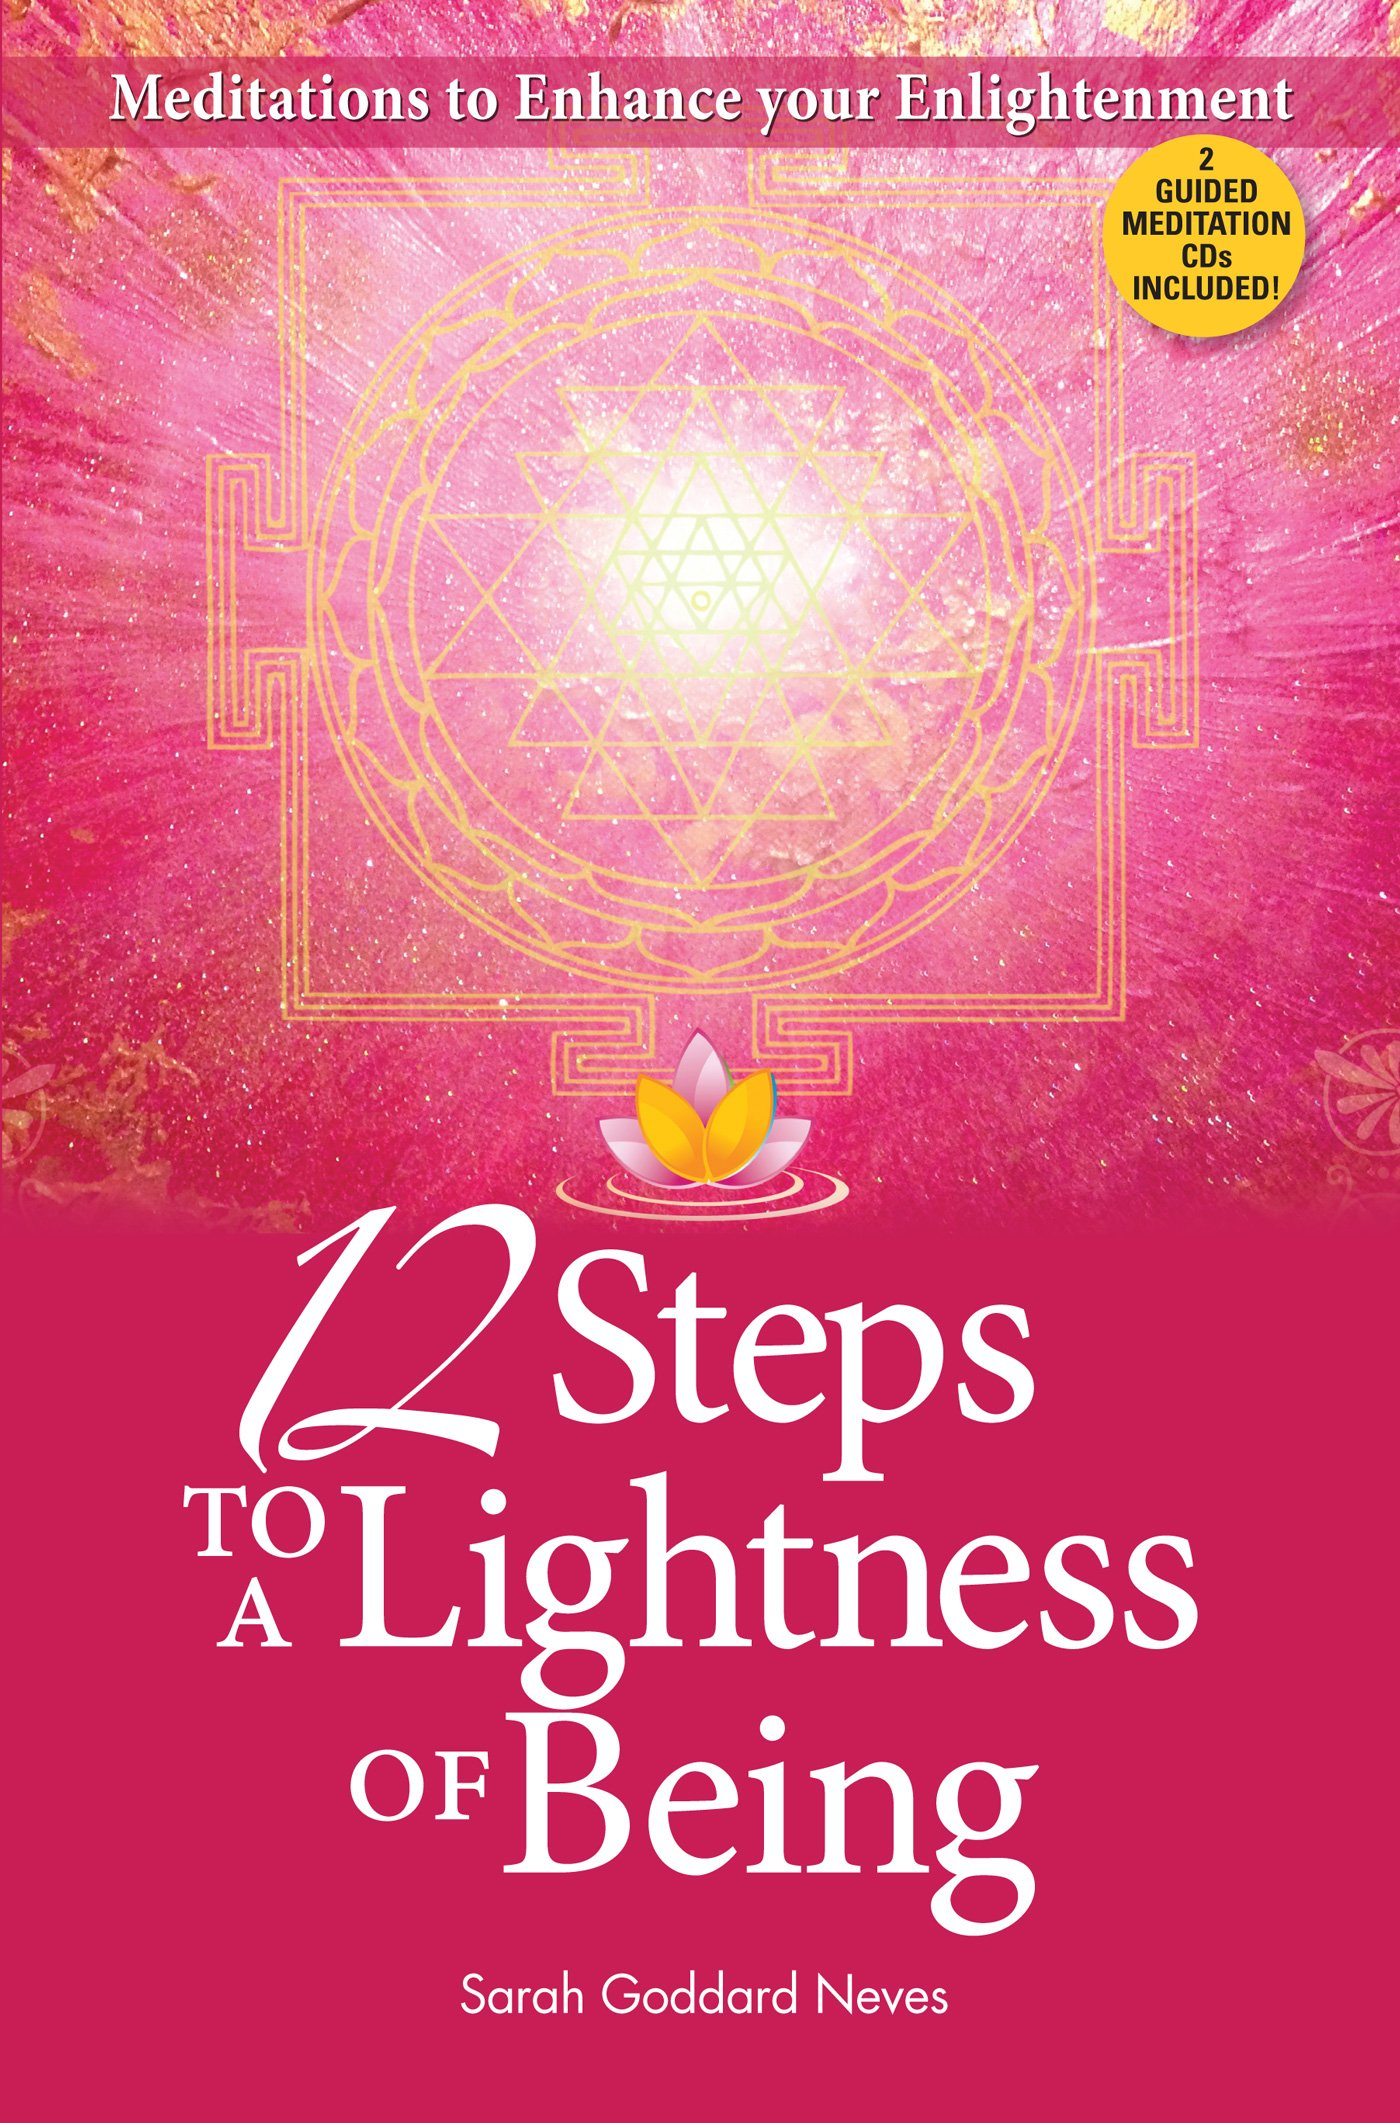 Download 12 Steps to a Lightness of Being ebook